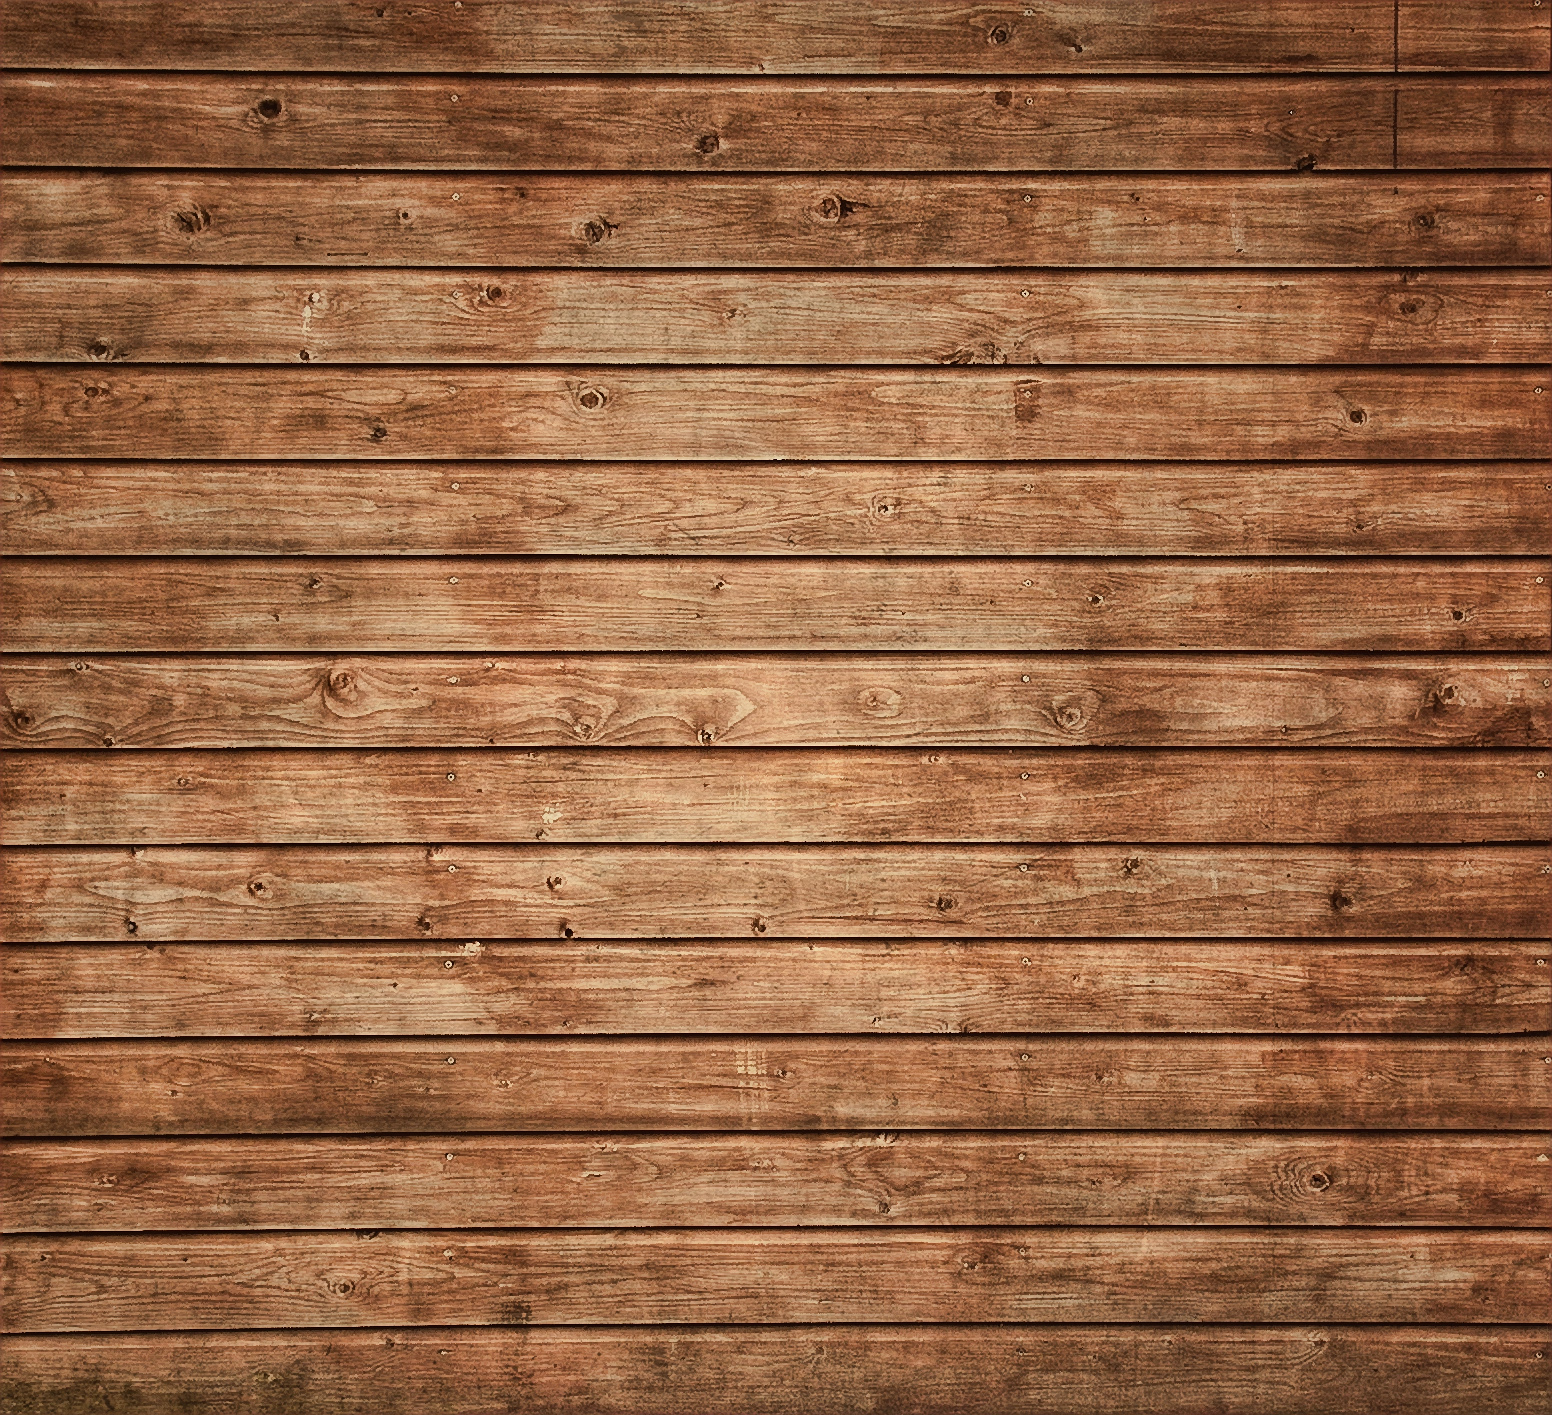 Http Digitalresult Com View 20 Wooden Texture